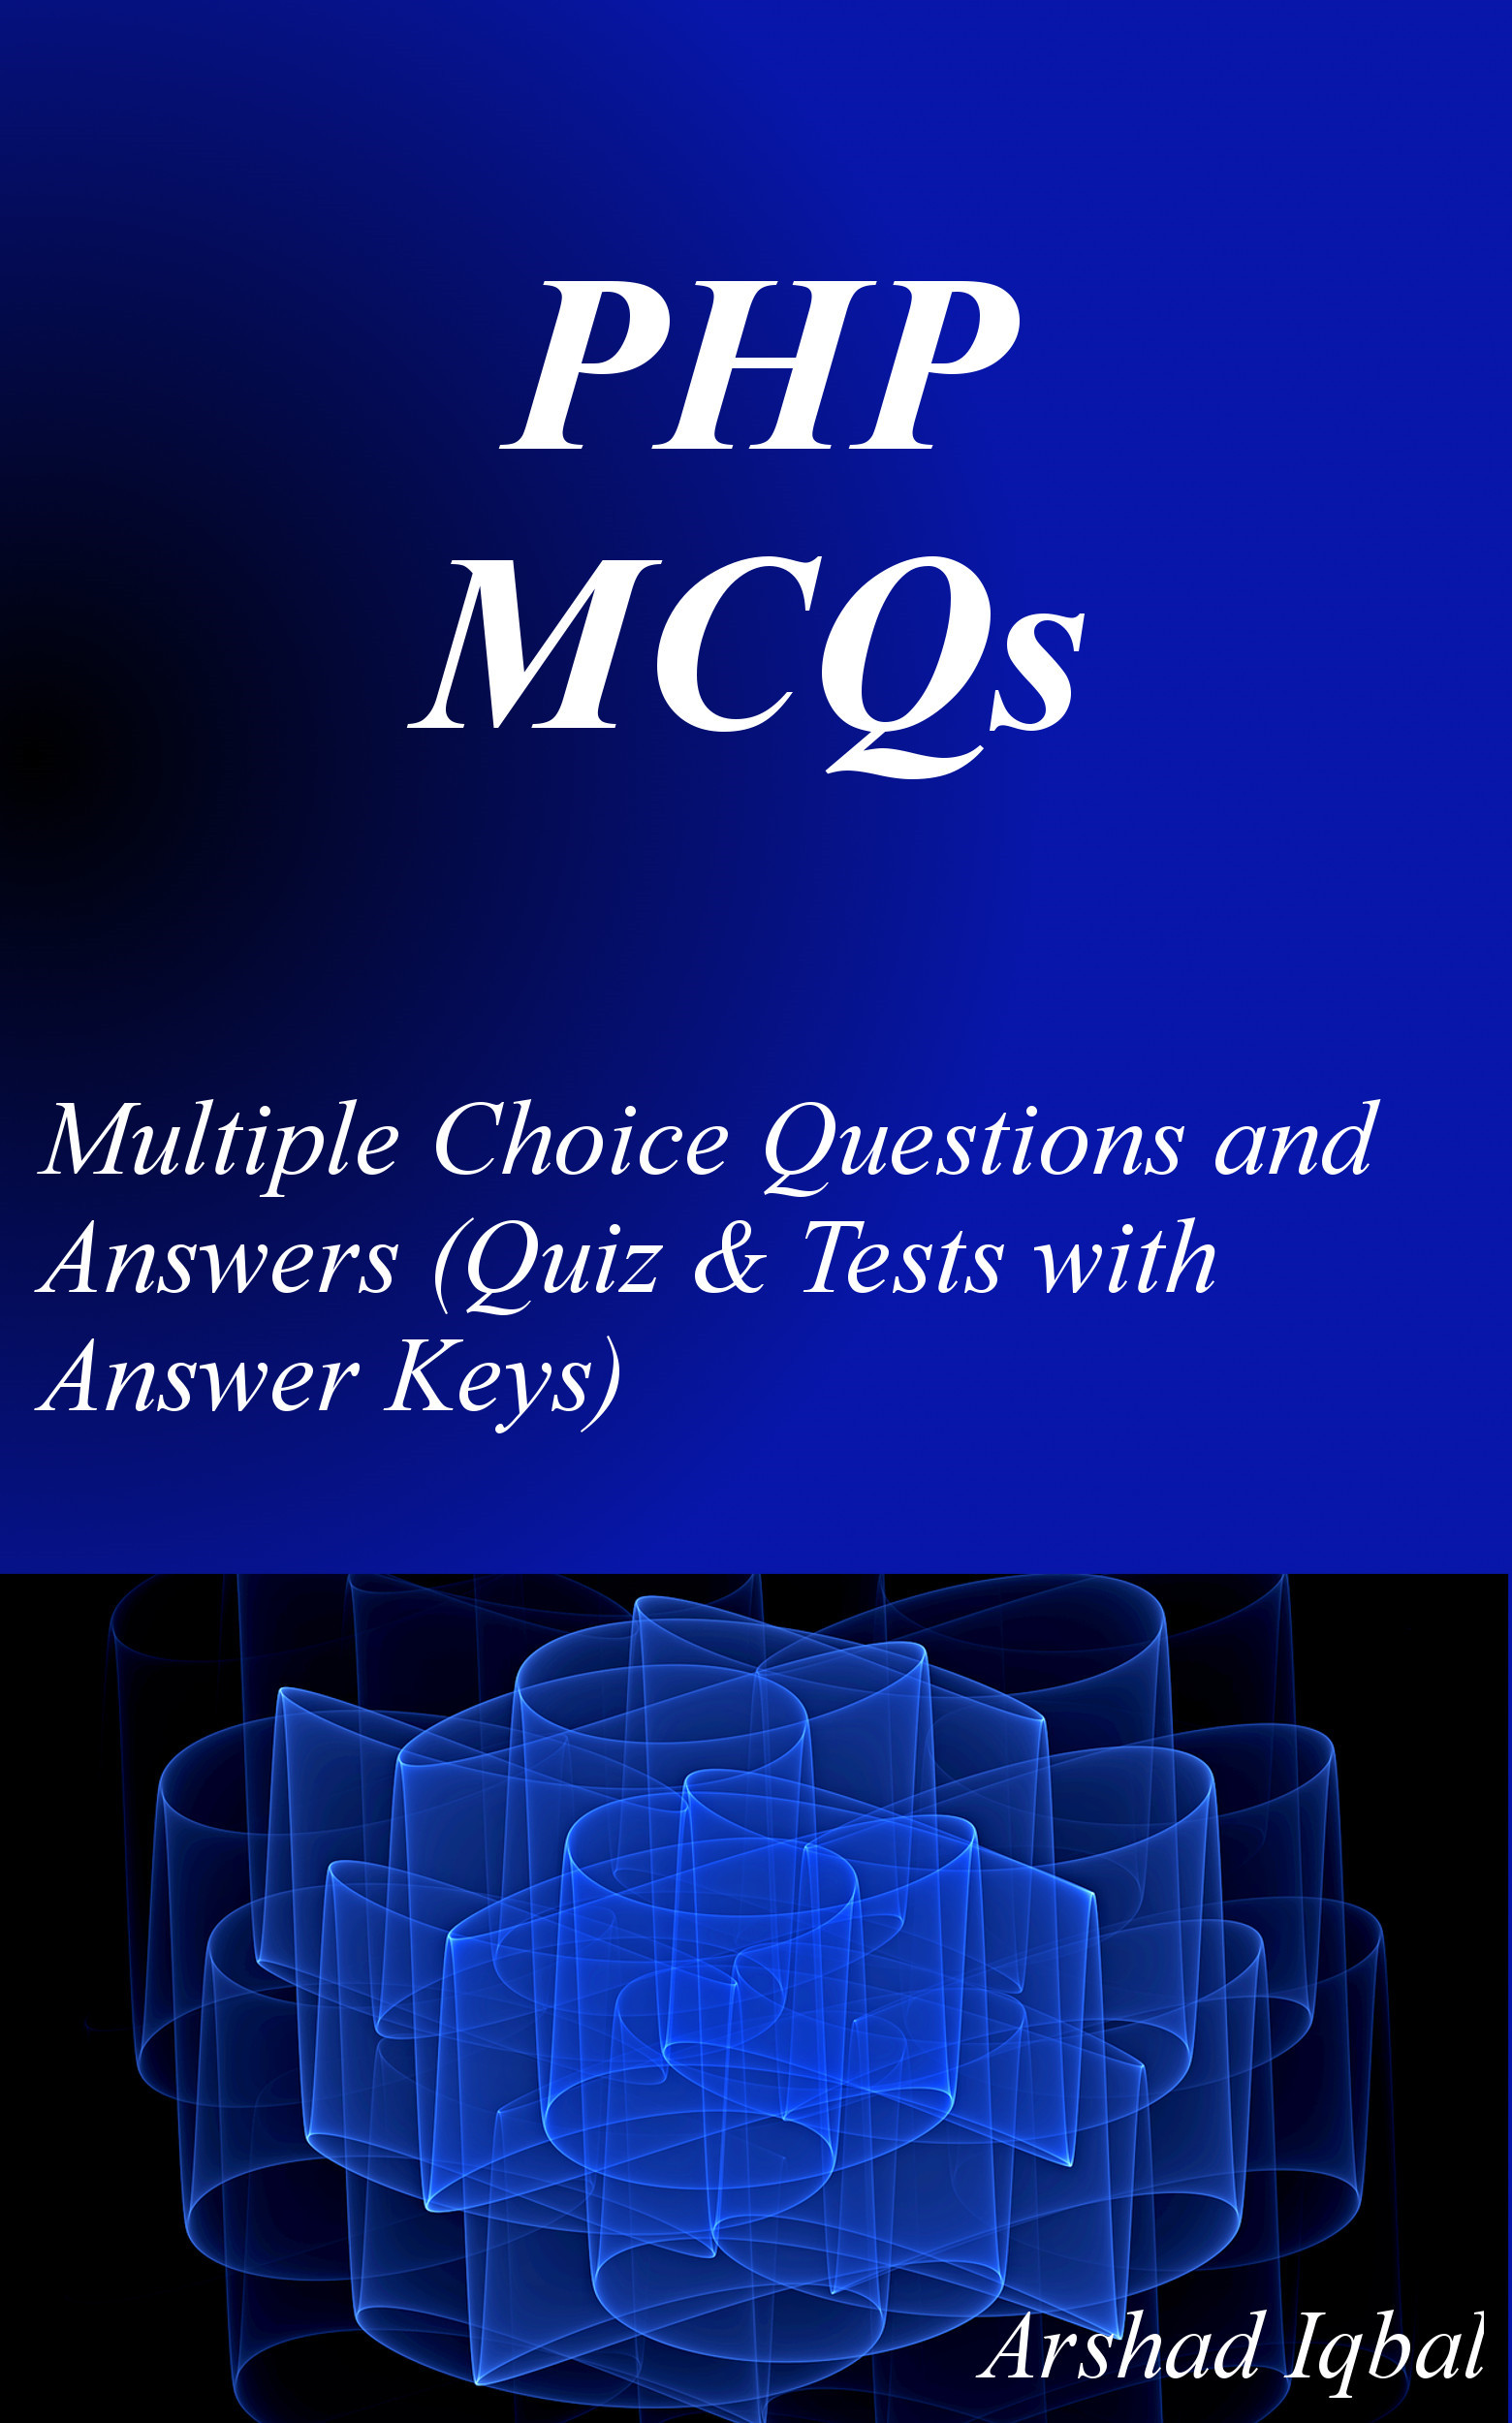 PHP MCQs: Multiple Choice Questions and Answers (Quiz, MCQs & Tests with Answer Keys)